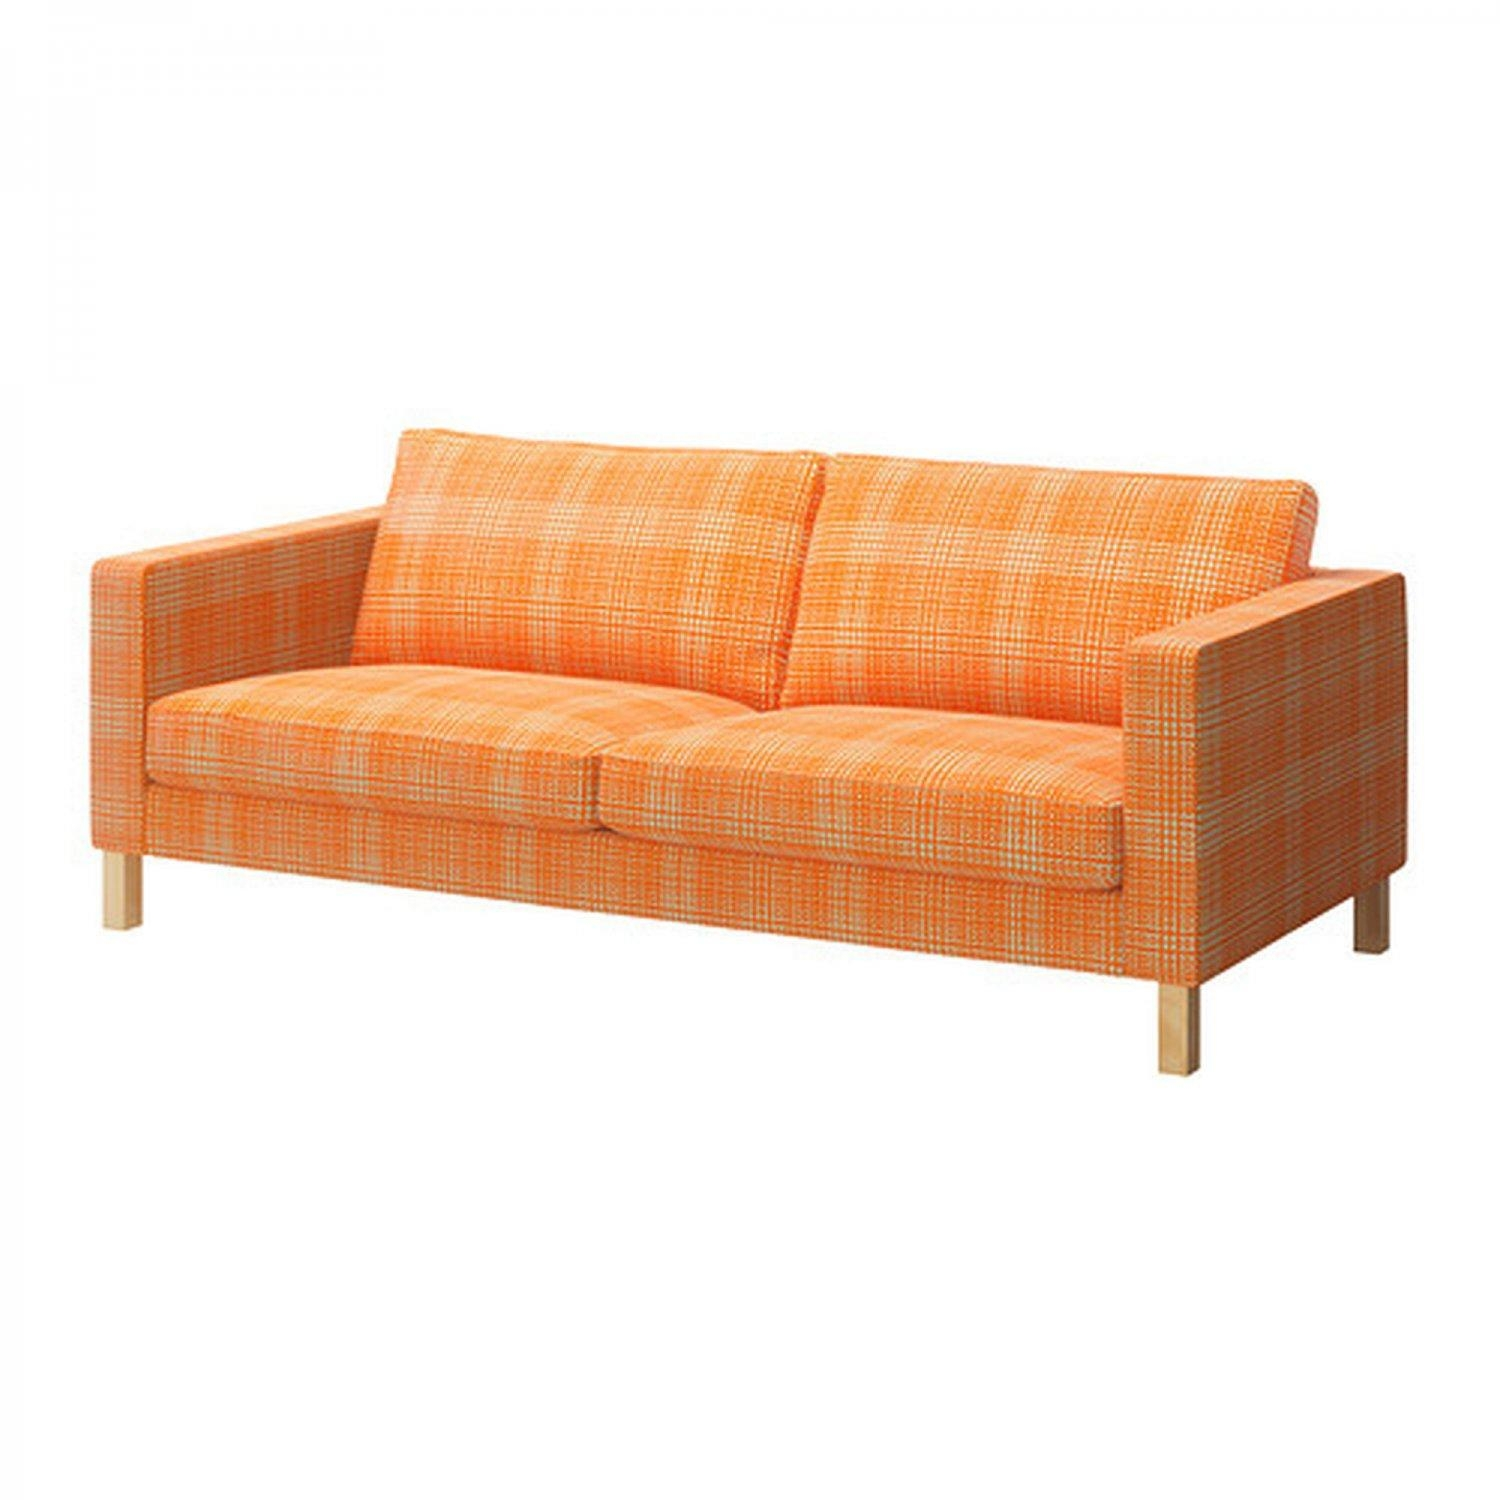 Furniture: Stunning Ikea Karlstad Sofa Cover For Your Sofa Need Within Orange Ikea Sofas (View 20 of 20)